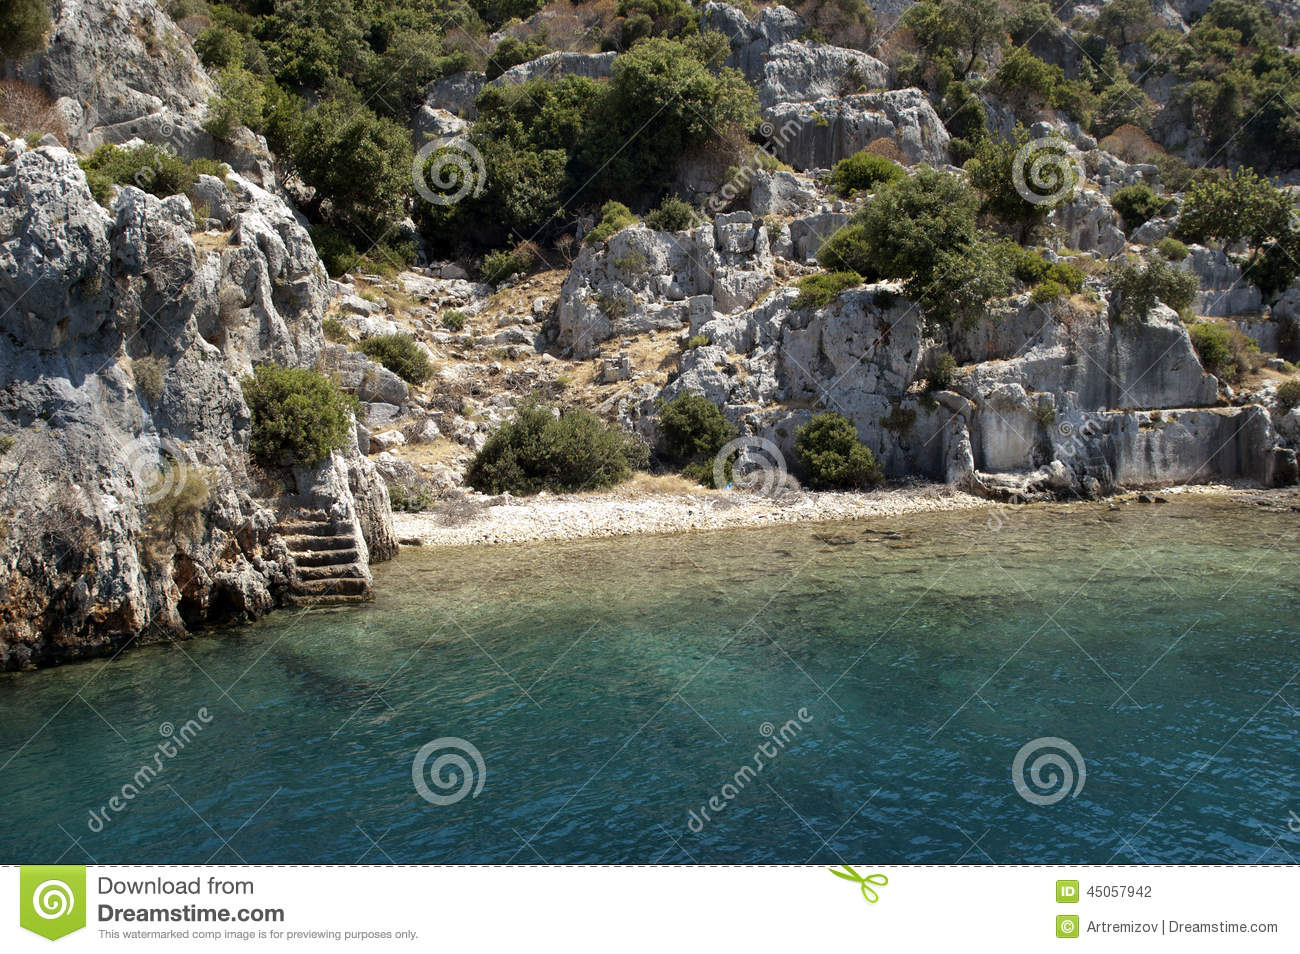 Sunken City, Kekova, Turkey, Scene 11 Stock Photo.